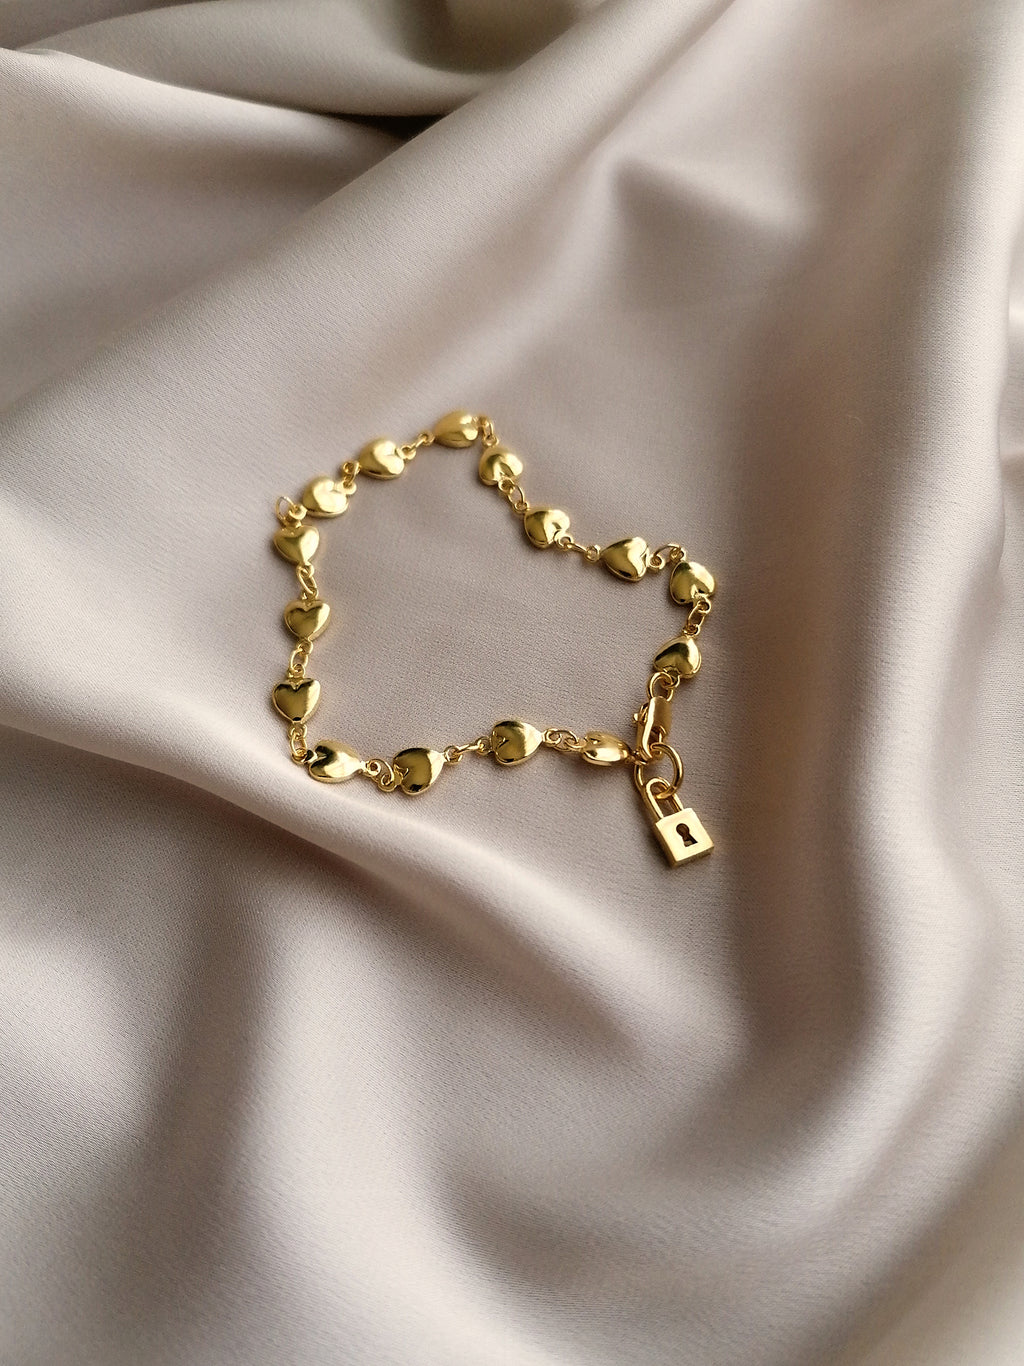 THE KEY TO MY HEART BRACELET